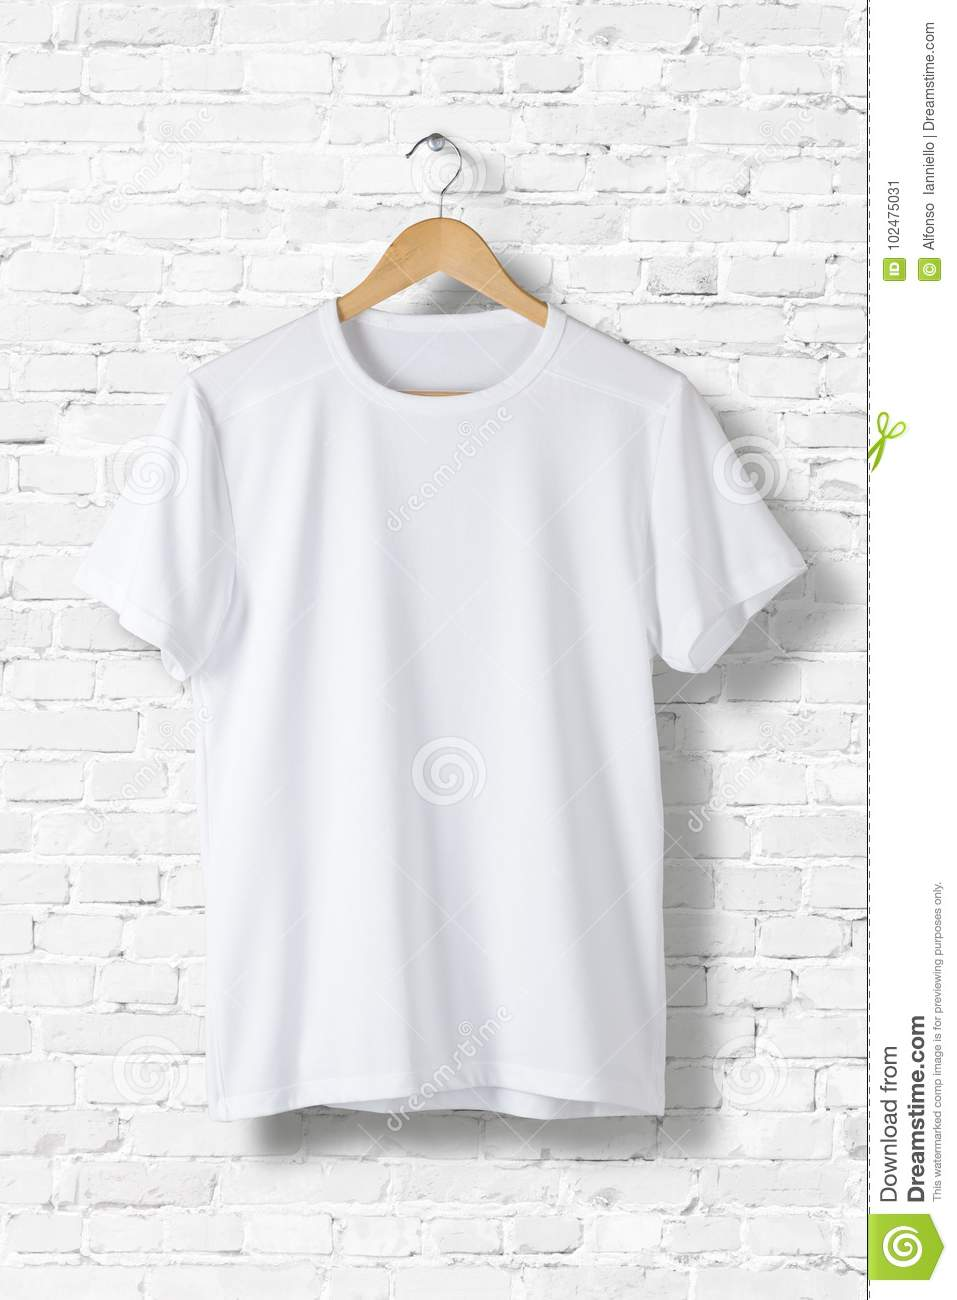 Blank White T-Shirt Mock-up hanging on white wall, front side view.